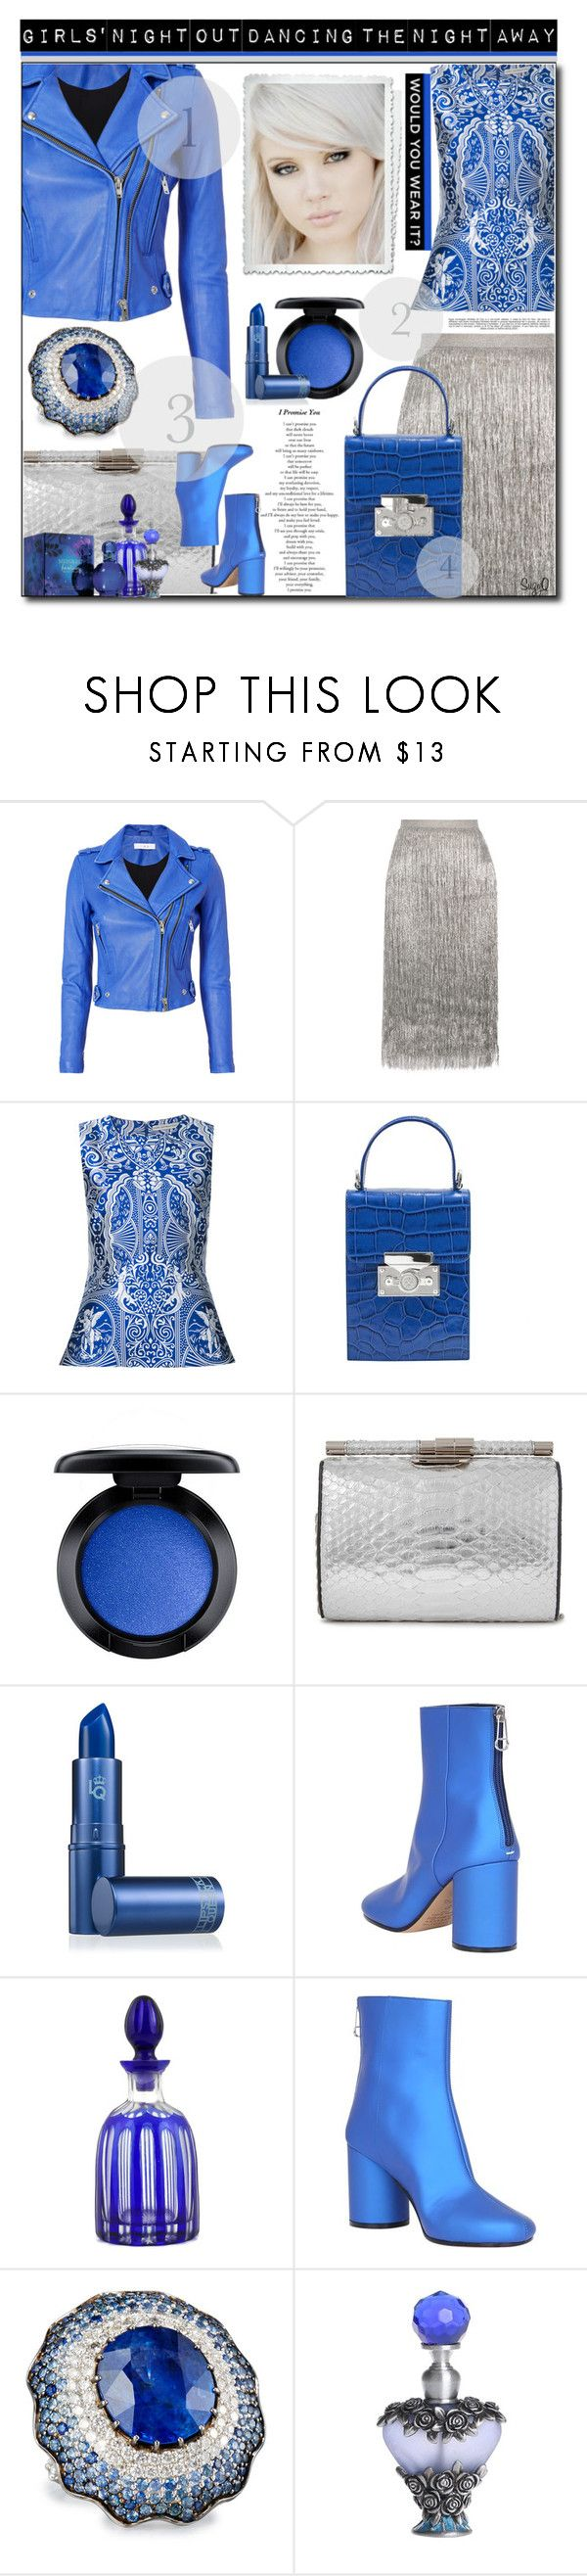 """GIRLS' NIGHT OUT"" by polyvore-suzyq ❤ liked on Polyvore featuring IRO, Rachel Zoe, Mary Katrantzou, Subella London, MAC Cosmetics, Lipstick Queen, Maison Margiela, Alexander Laut, Whiteley and Britney Spears"